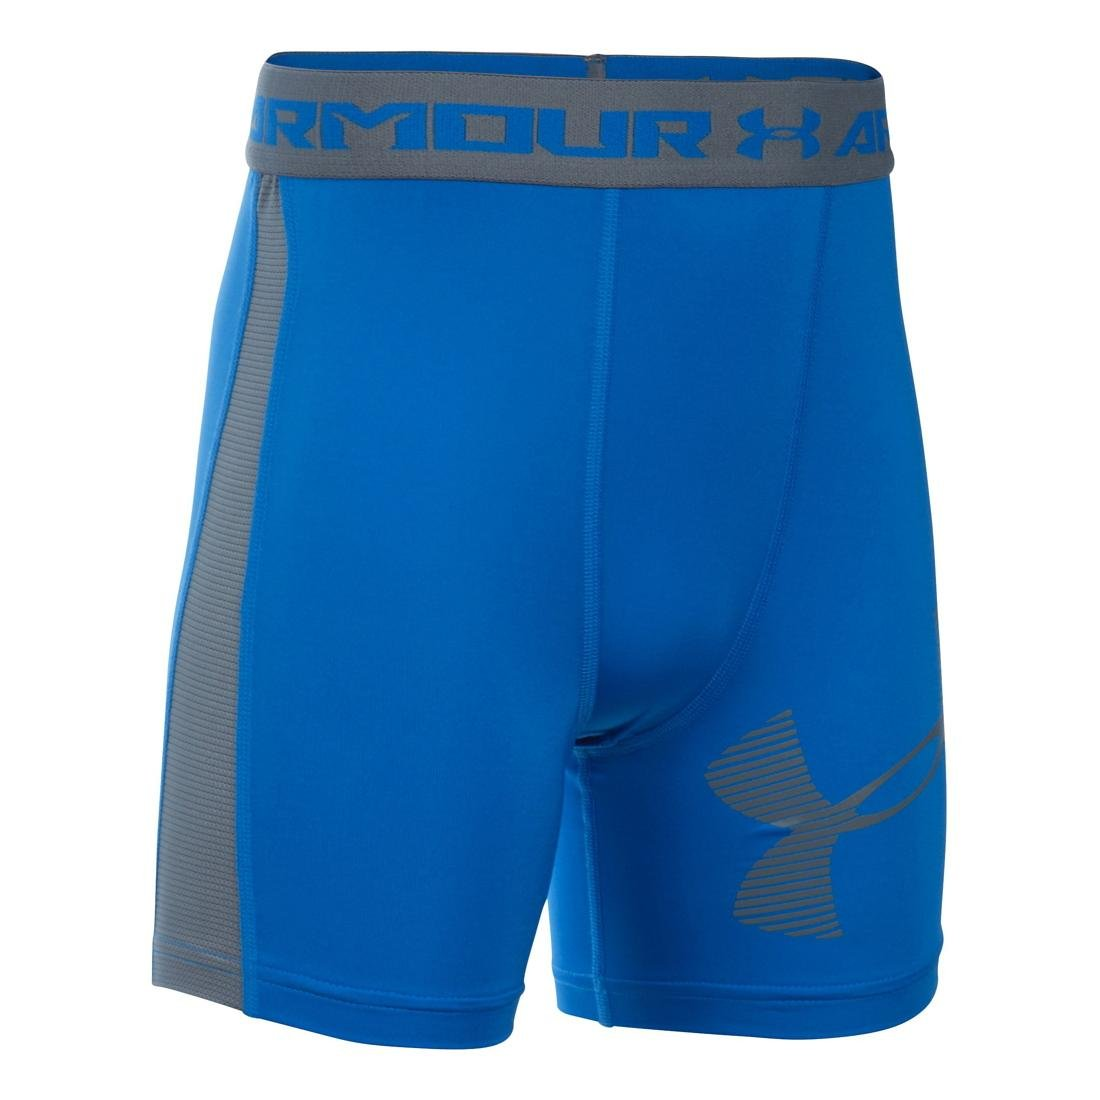 Under Armour Boys ' UA HeatGear Armour Up fitted-mid XL (18-20 Big Kids) Ultra Blue/Graphite B018S8ZH9E